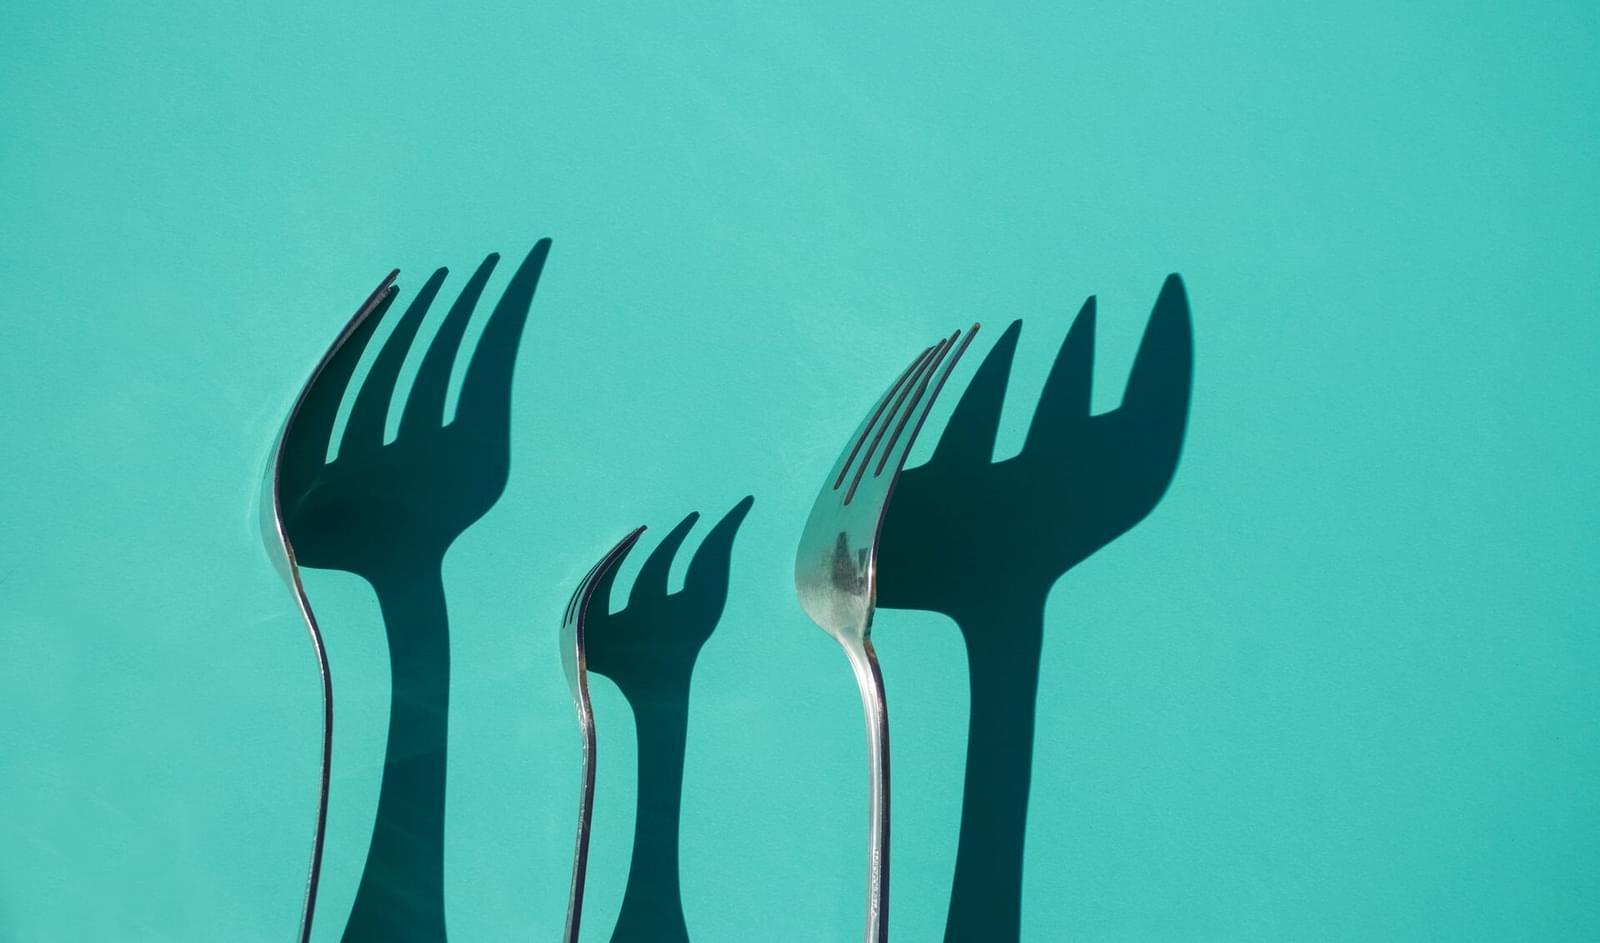 three forks in front of teal background